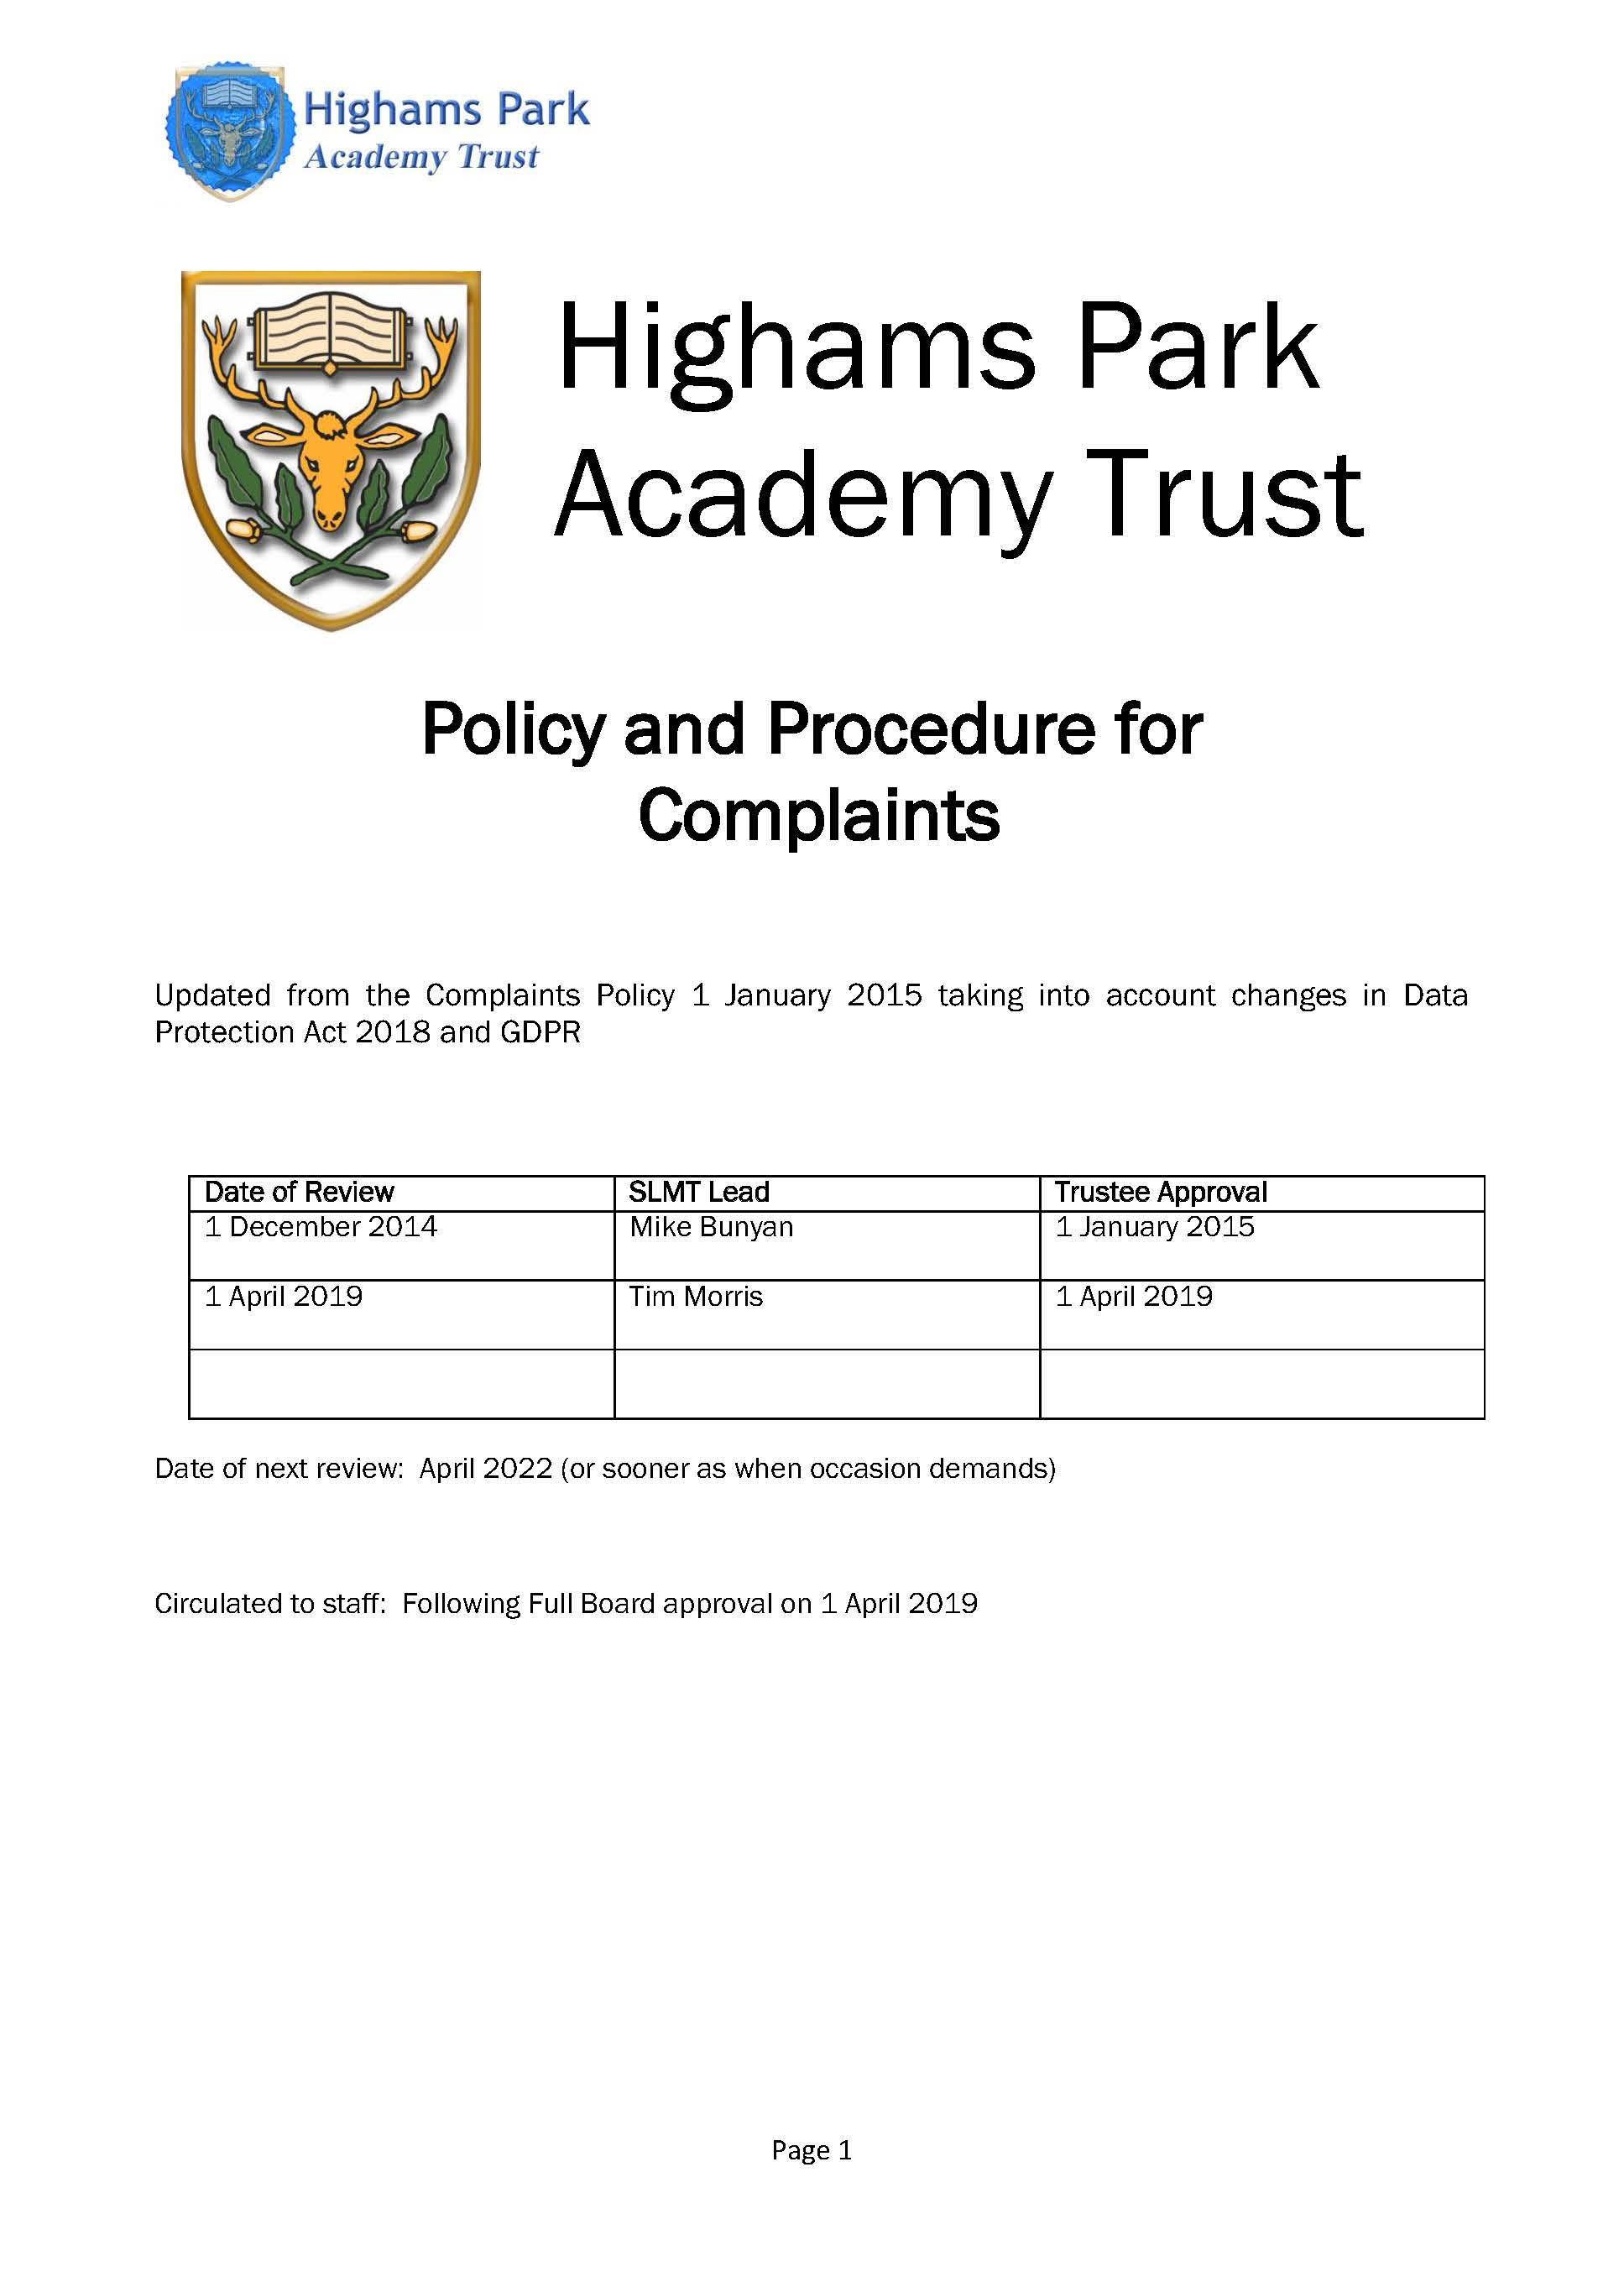 Complaints Policy